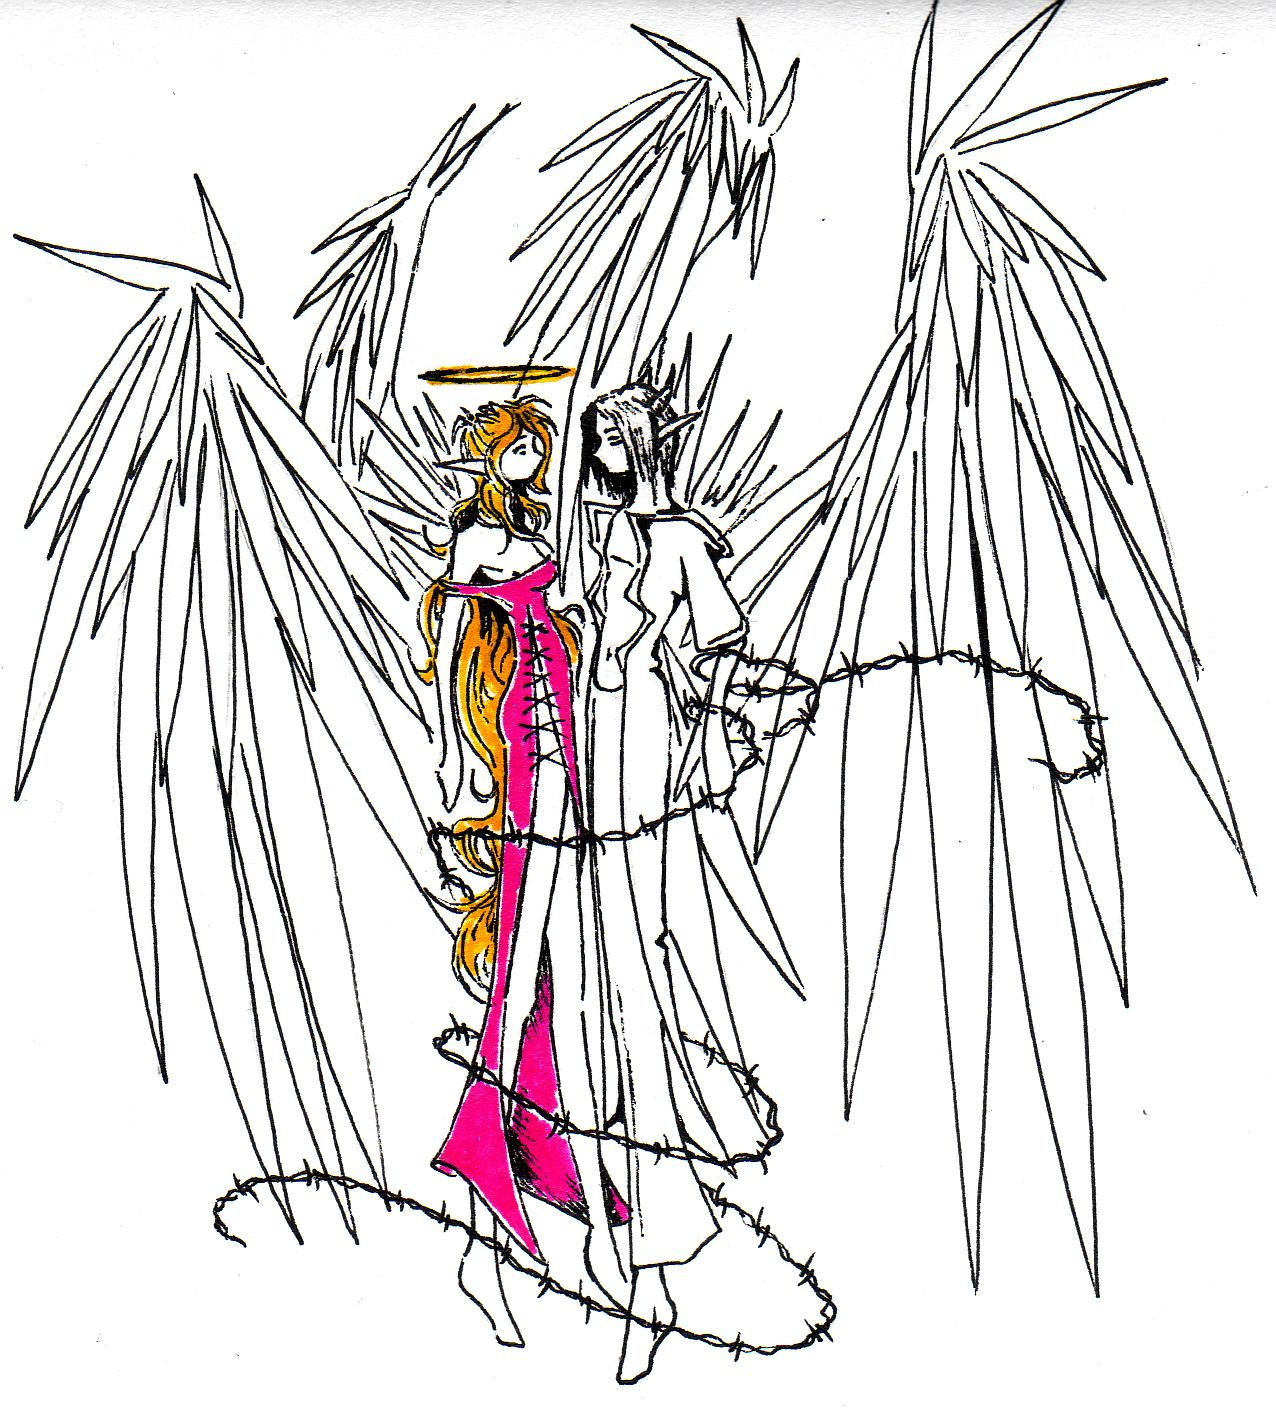 Angel Girl Devil Boy Love By Skissored On Clipart Library